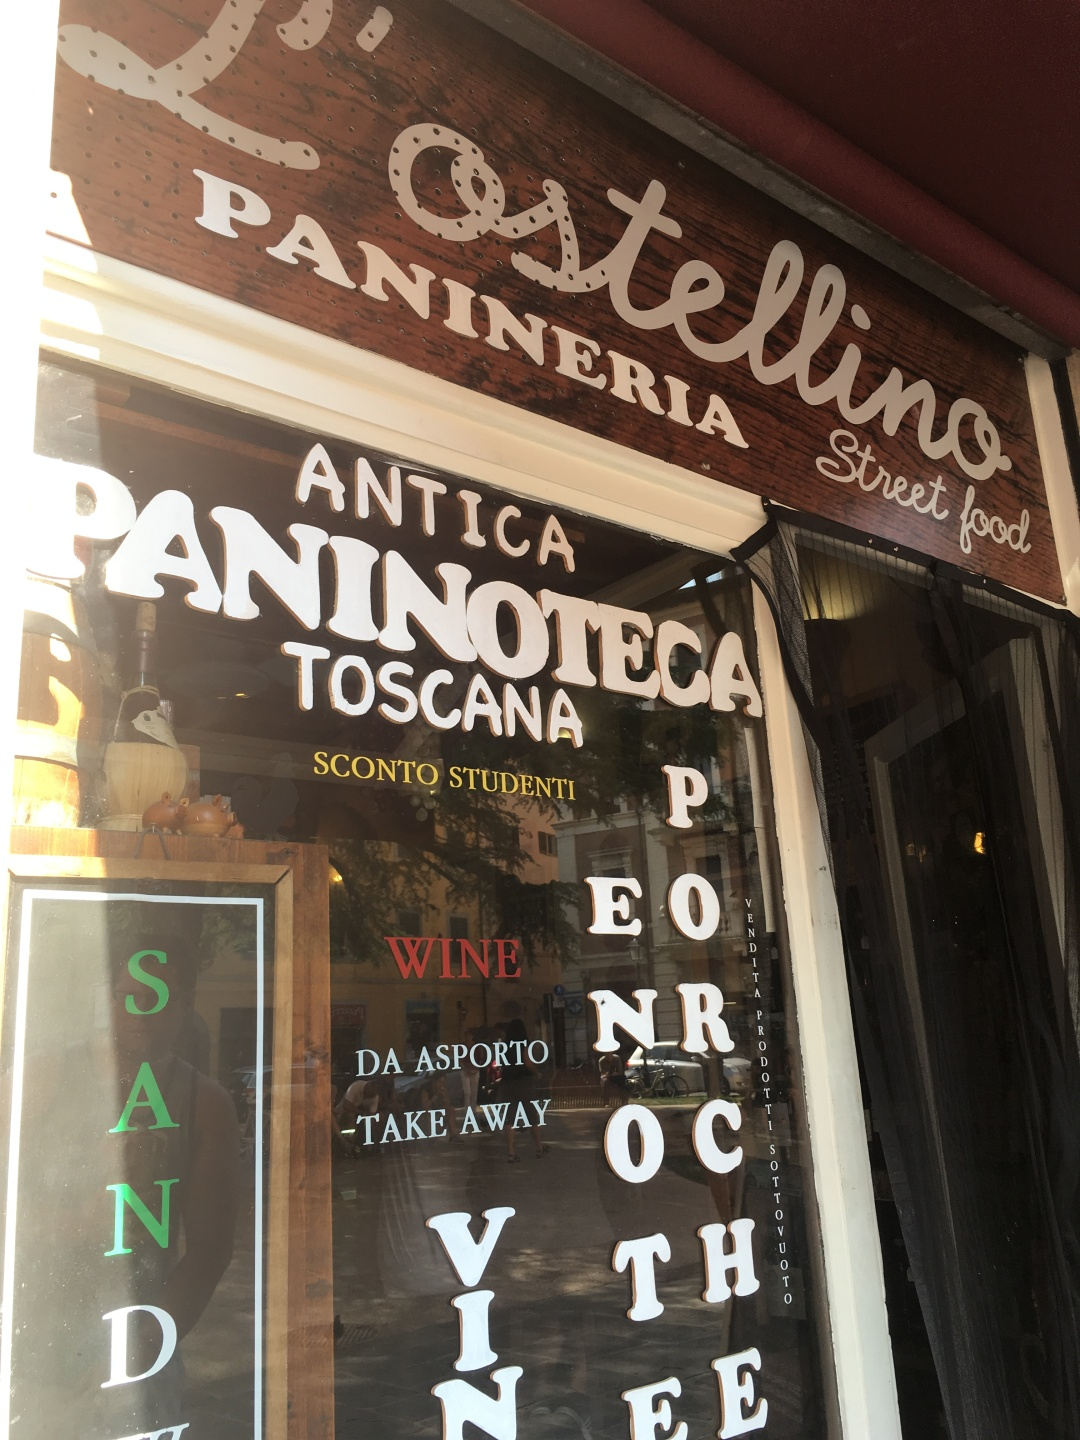 L'ostellino Panineria Street food shop front